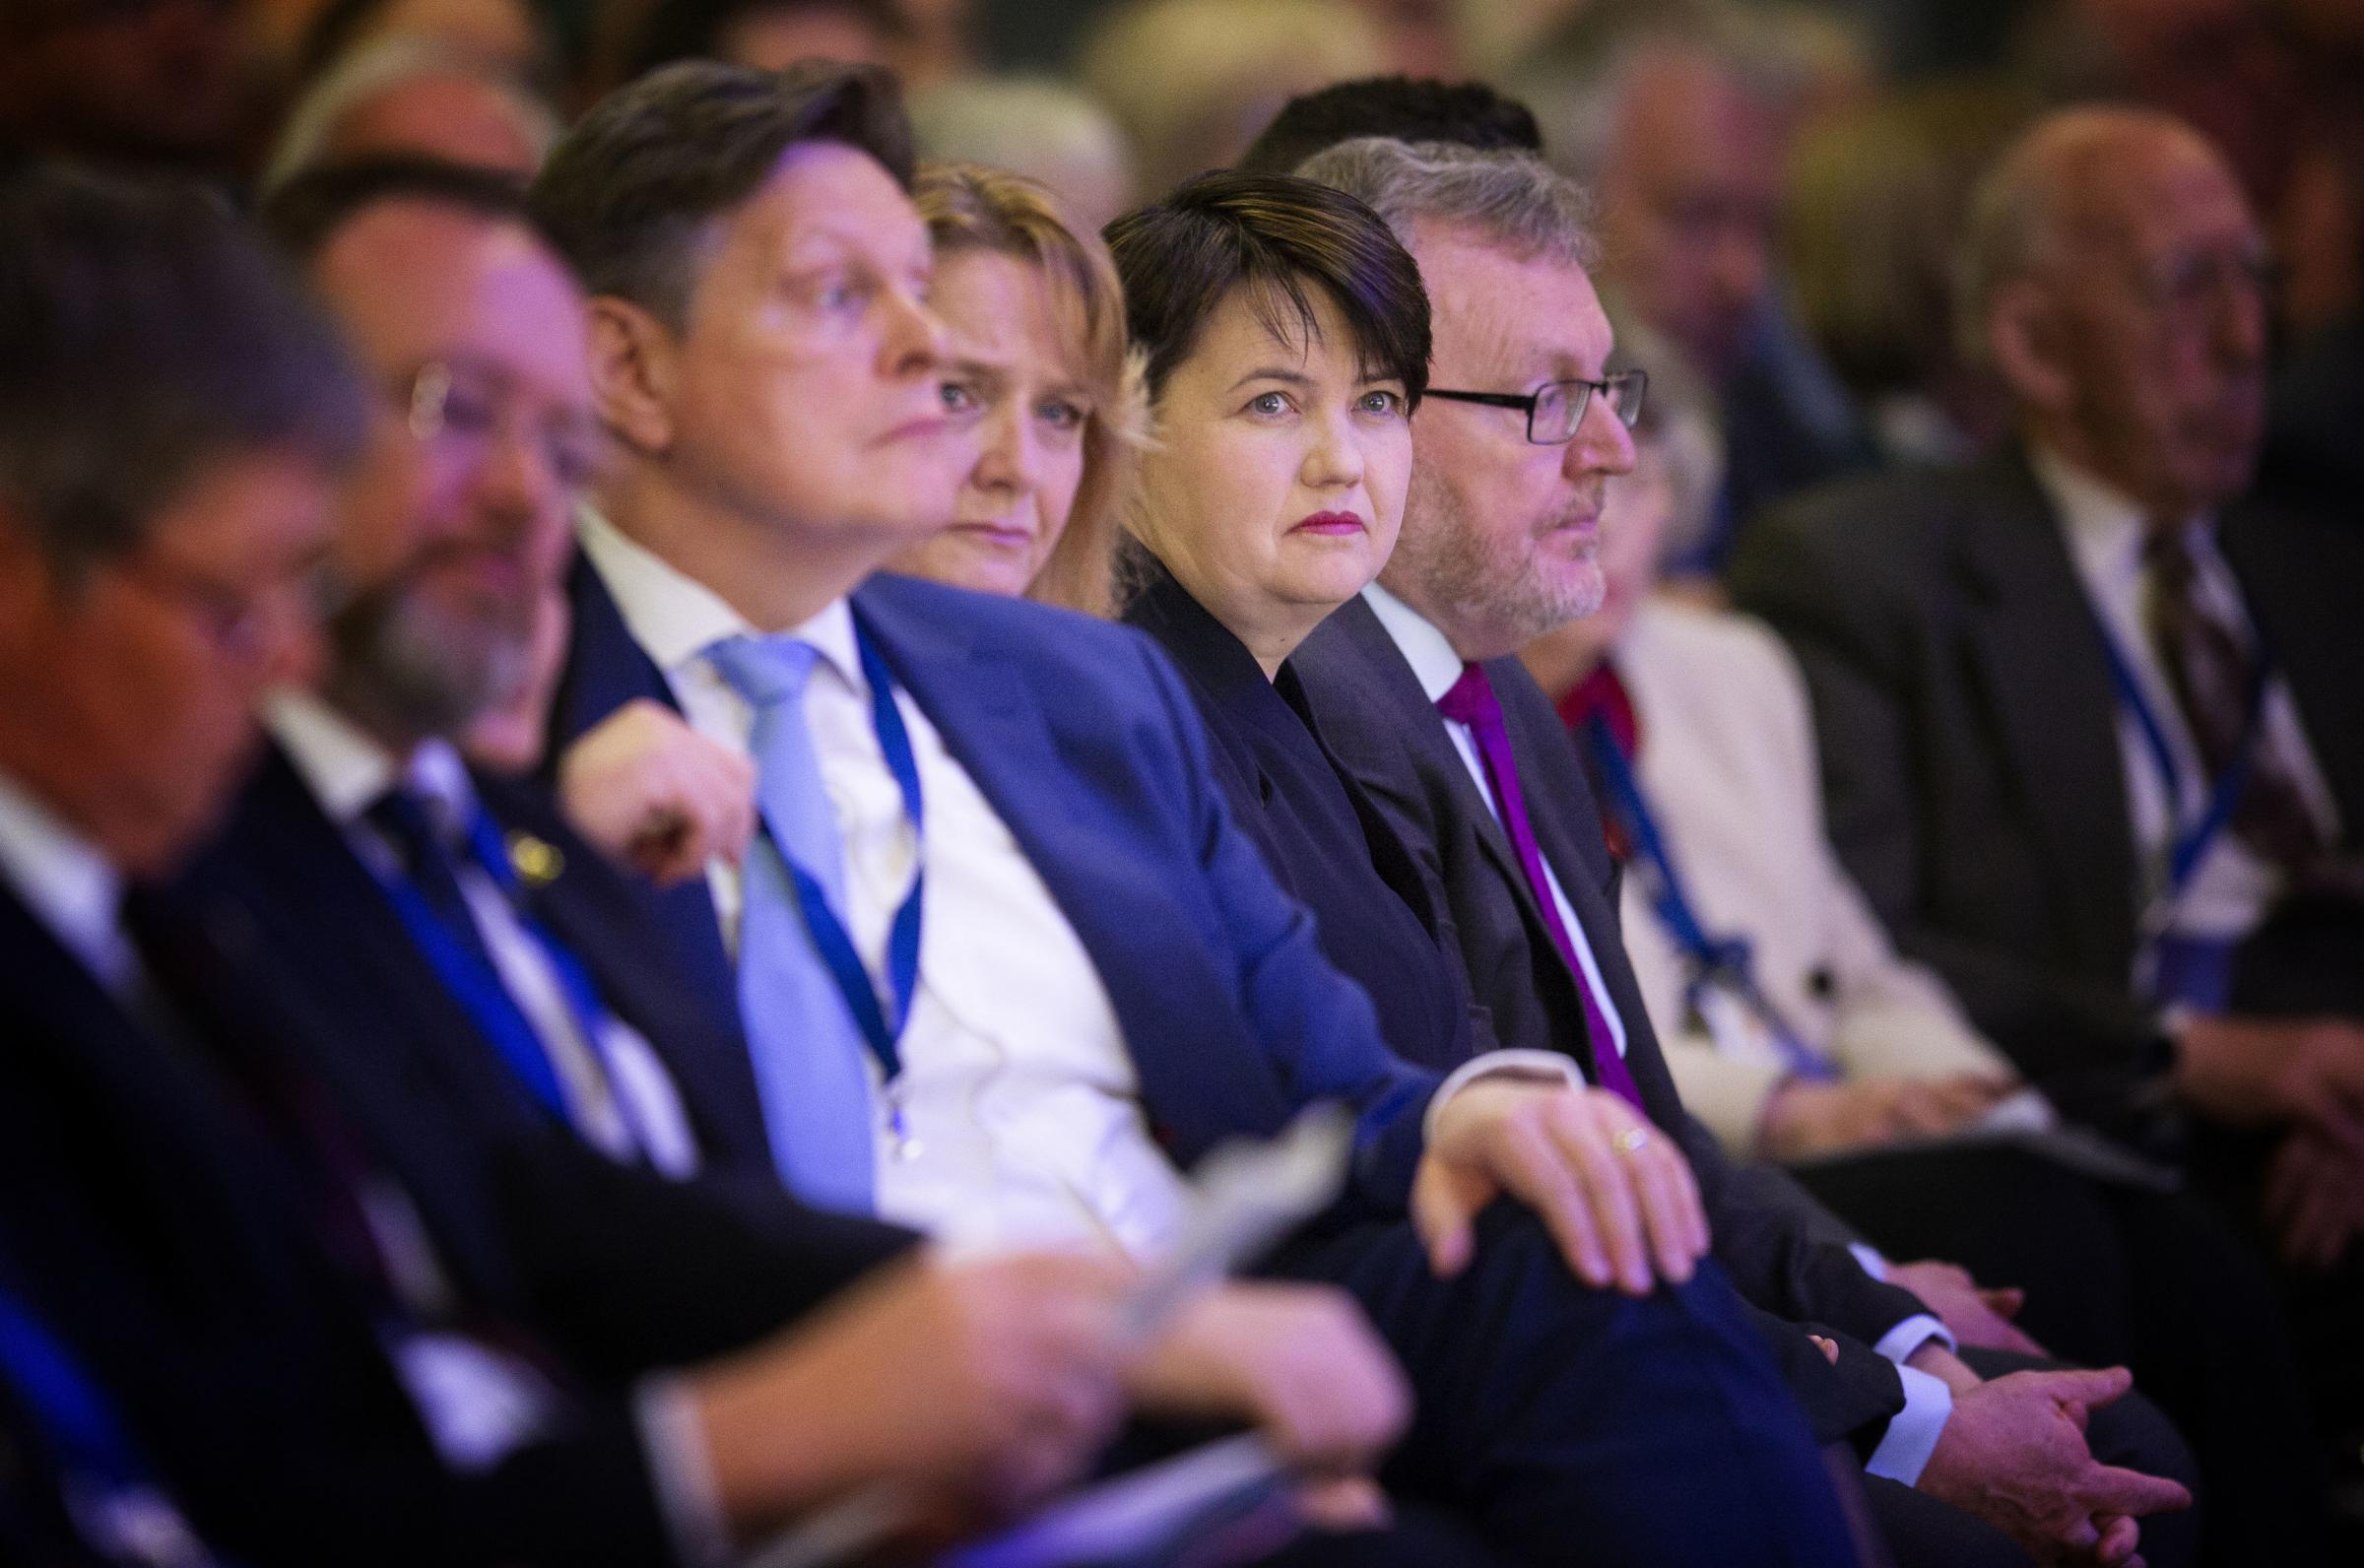 Ruth Davidson gave a speech at the Scottish Tory conference at the weekend